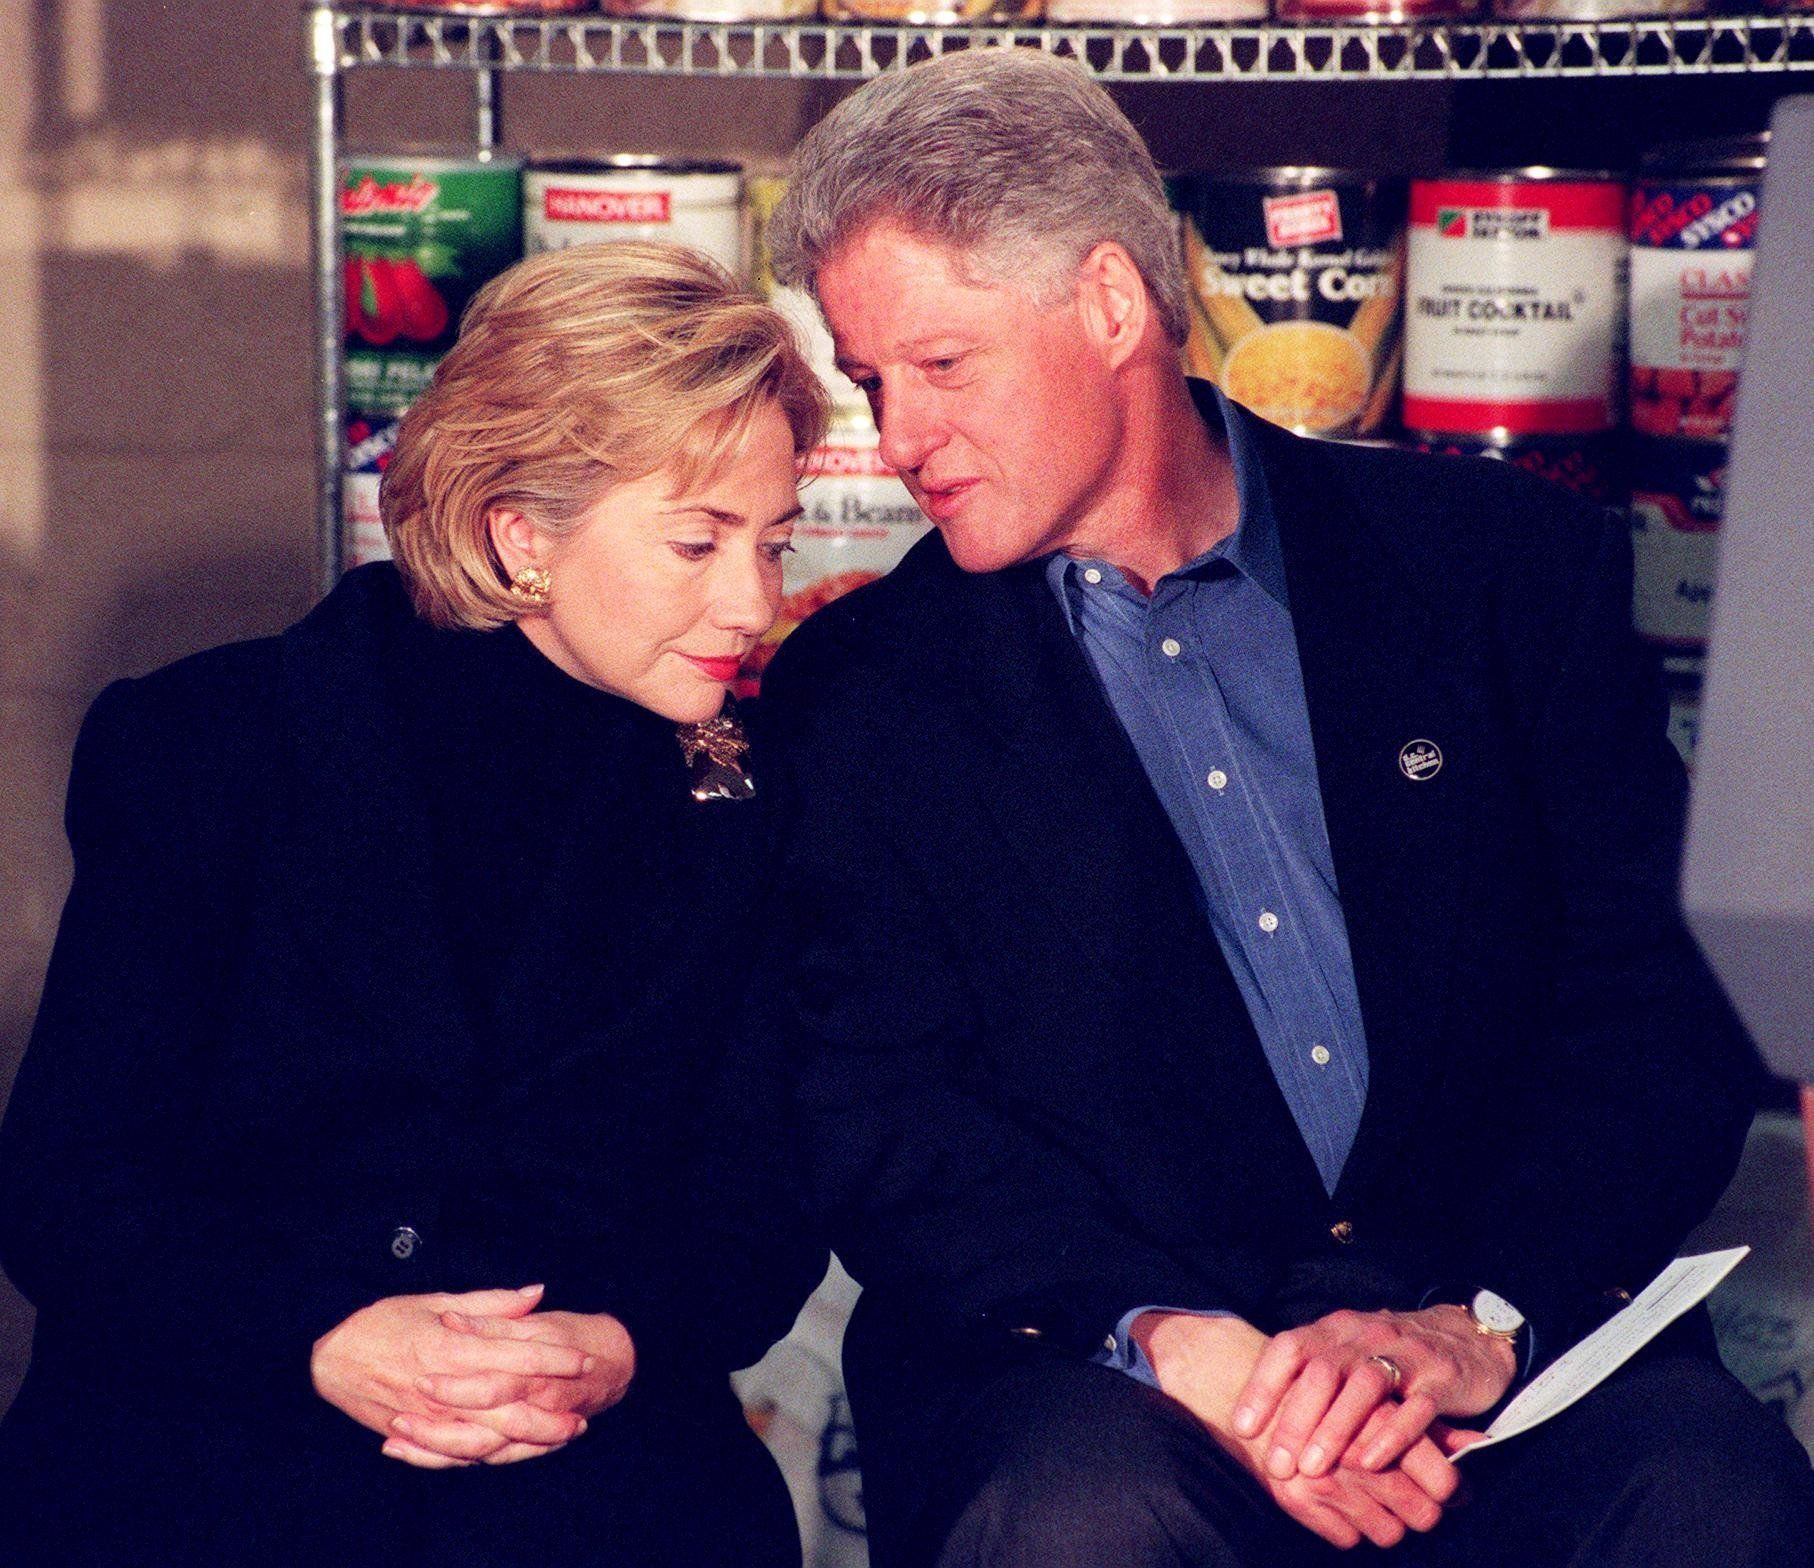 WASHINGTON, :  US President Bill Clinton (R) and First Lady Hillary Clinton (L) prepare to speak to workers at the DC Central Kitchen 21 December before assisting in preparing meals of lasagna that will be used to feed the homeless at emergency shelters in Washington, DC.  The DC Central Kitchen prepares 2,700 meals daily for more than 130 different non-profit organizations.    AFP PHOTO/Joyce NALTCHAYAN (Photo credit should read JOYCE NALTCHAYAN/AFP/Getty Images)